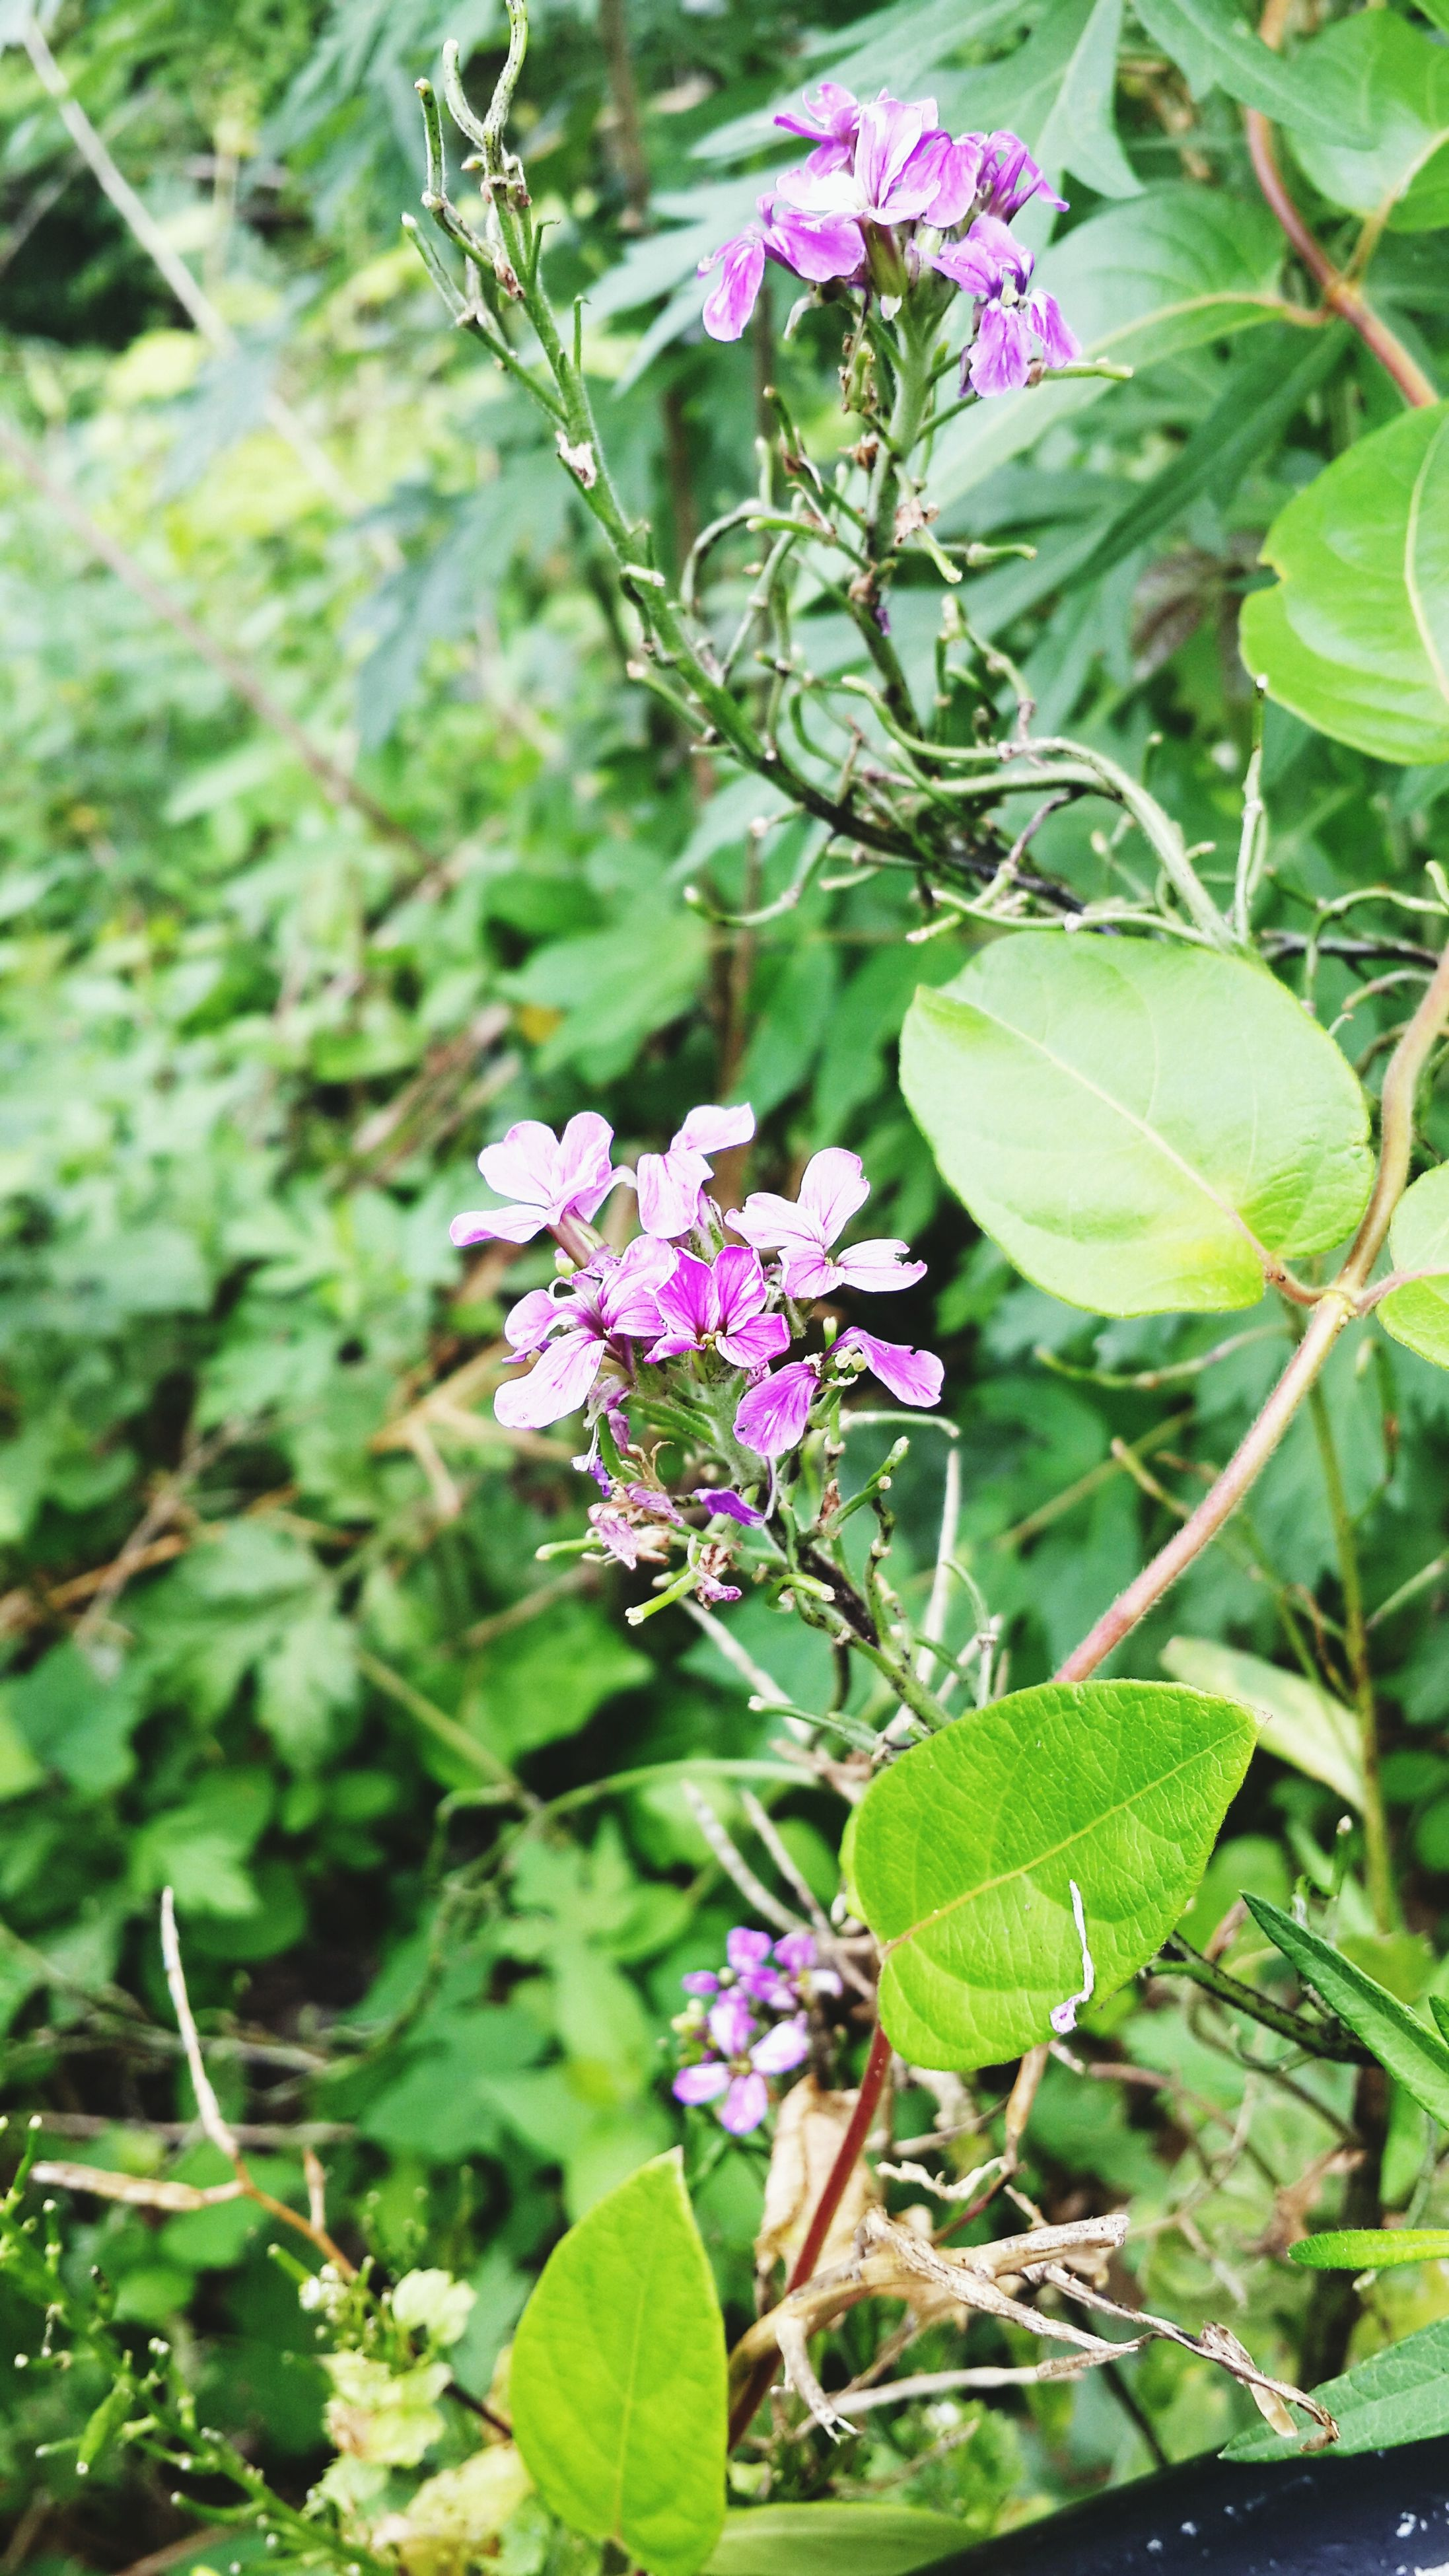 flower, freshness, growth, leaf, plant, fragility, purple, green color, beauty in nature, nature, petal, focus on foreground, close-up, blooming, pink color, one animal, flower head, insect, stem, outdoors